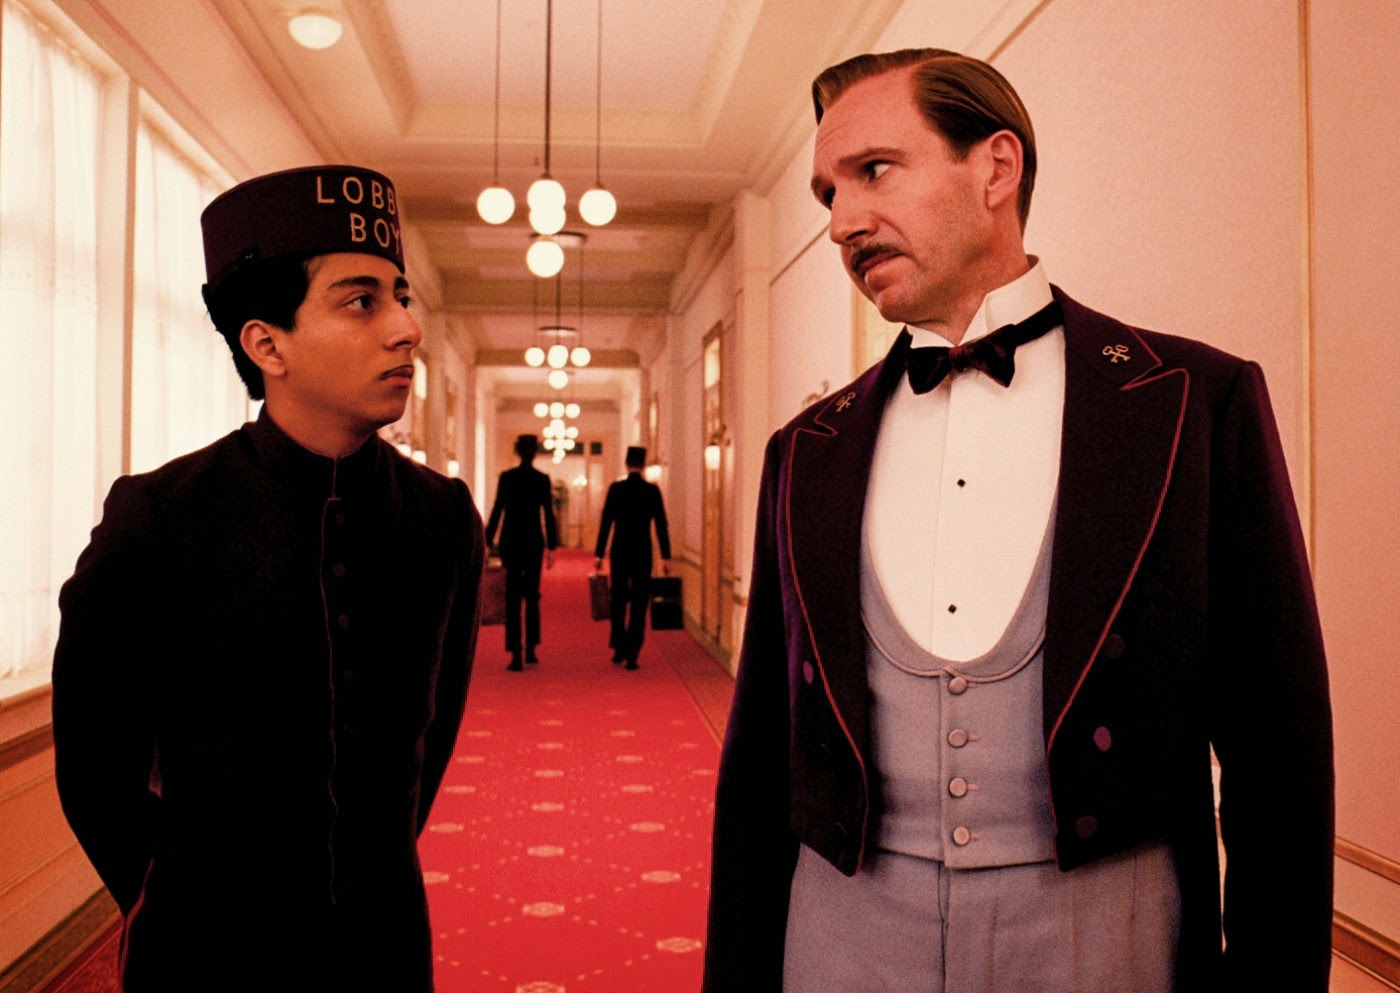 Ralph Fiennes and Tony Revolori in The Grand Budapest Hotel